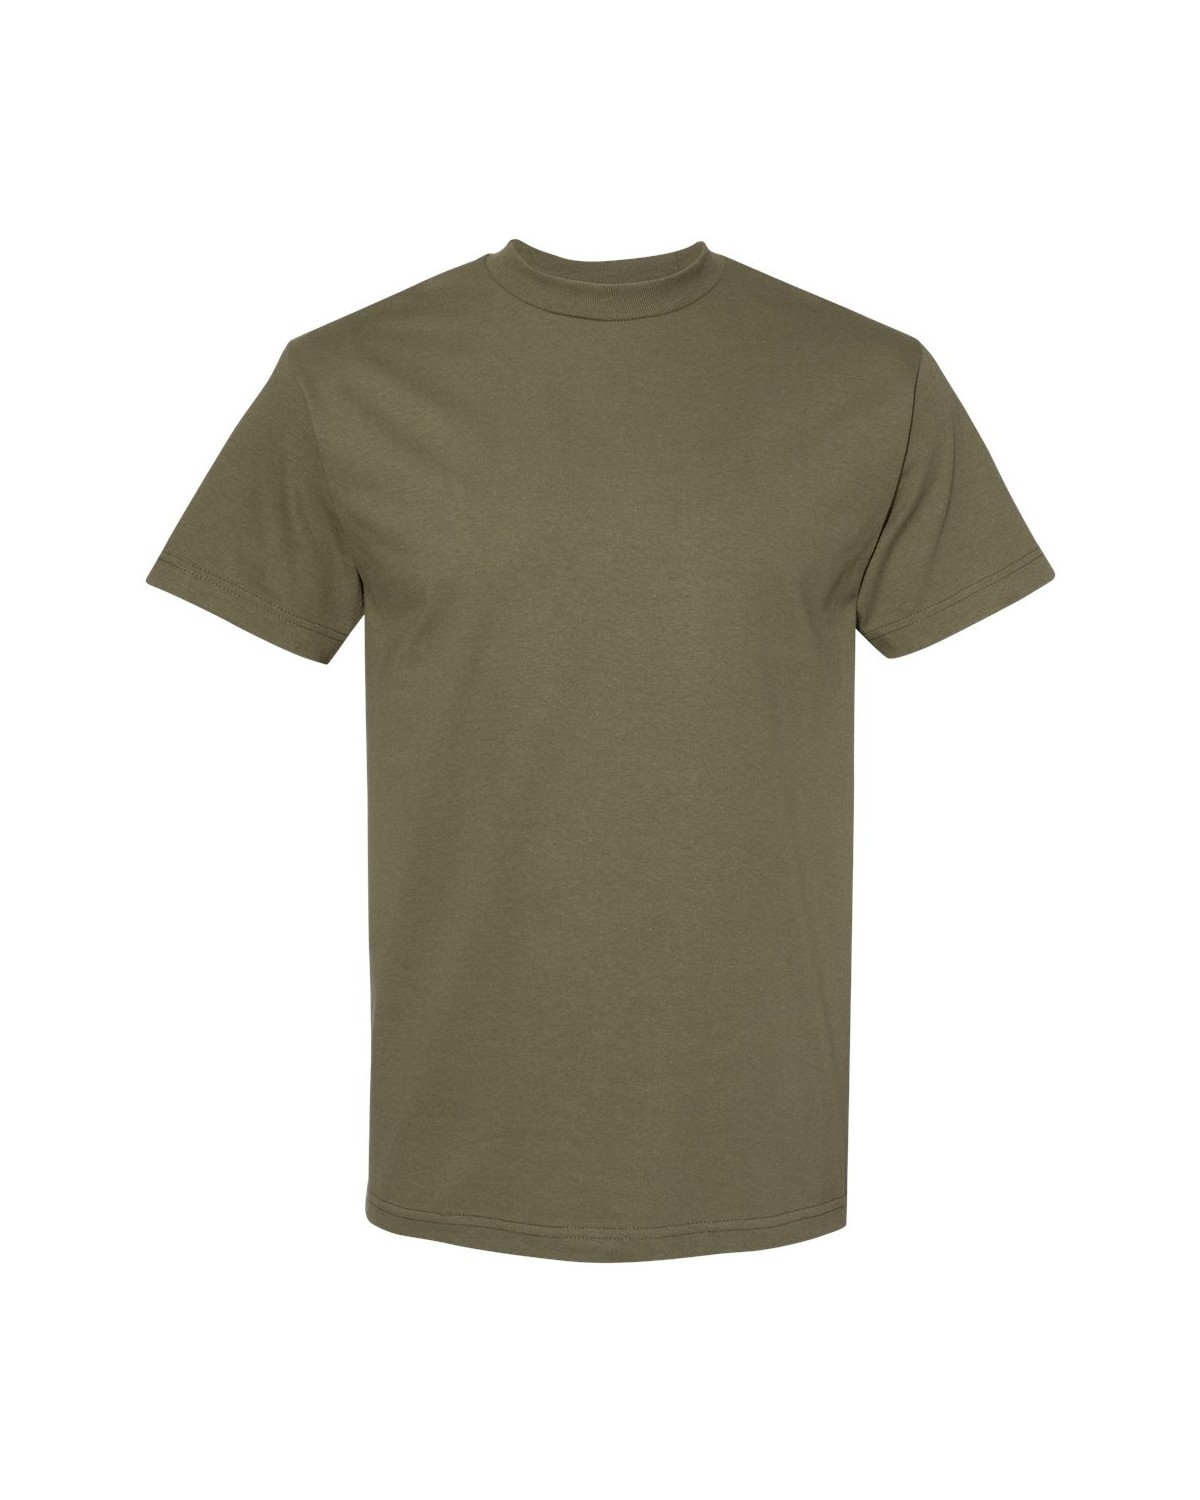 1301 Alstyle MILITARY GREEN